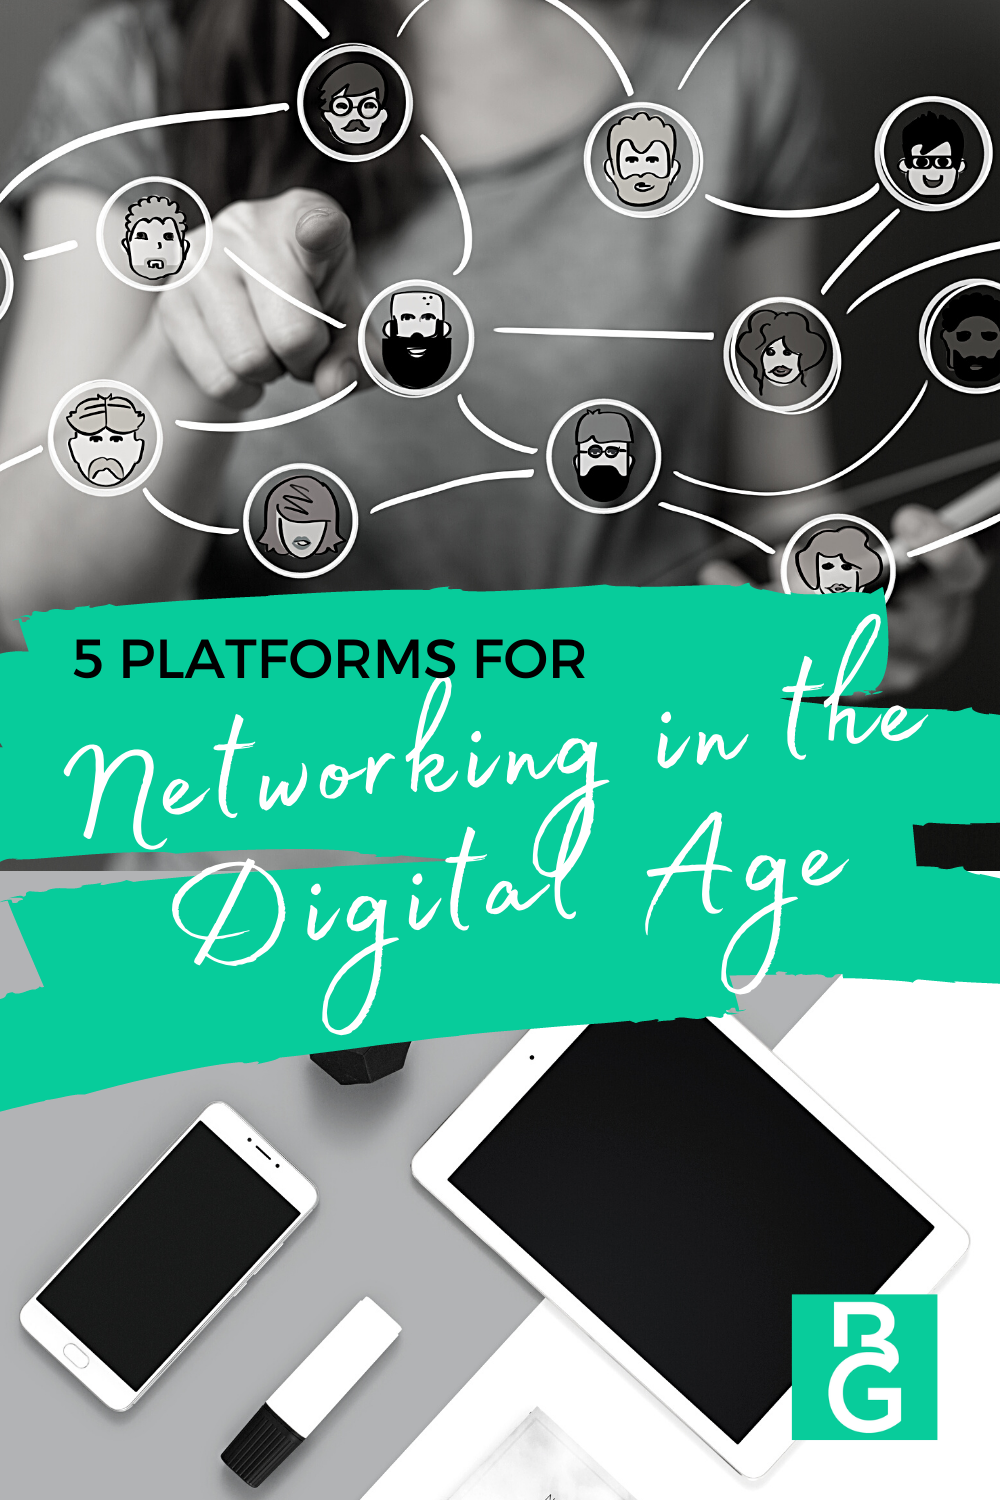 5 platforms for networking in the digital age.